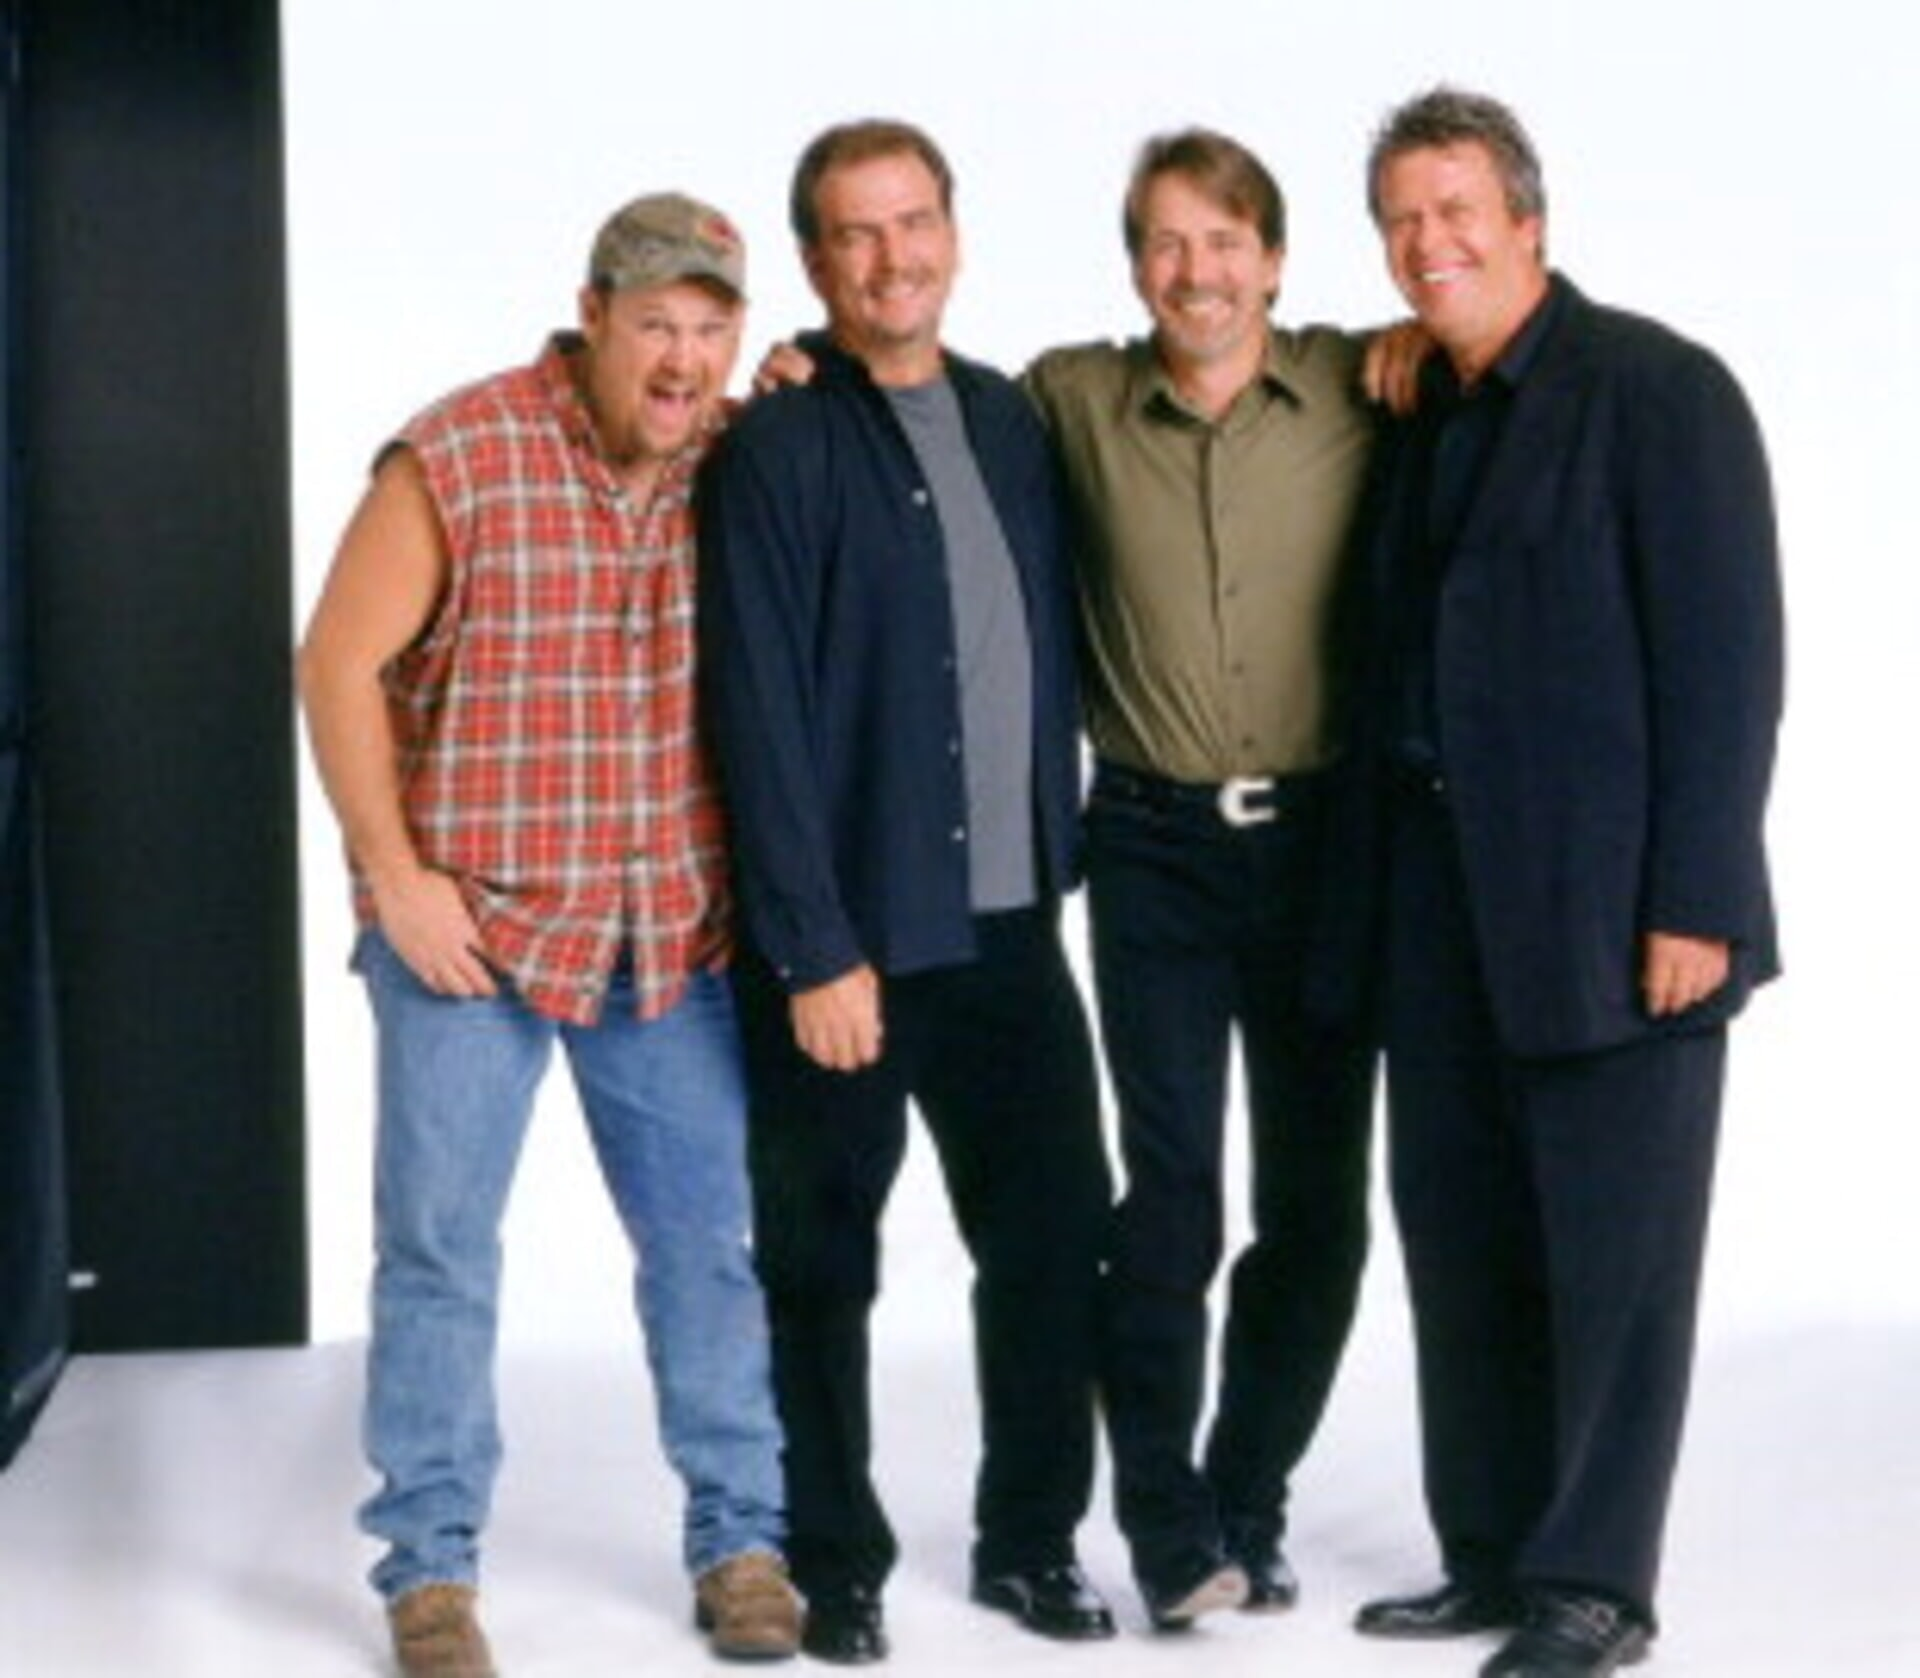 Blue Collar Comedy Tour: the Movie - Image 4